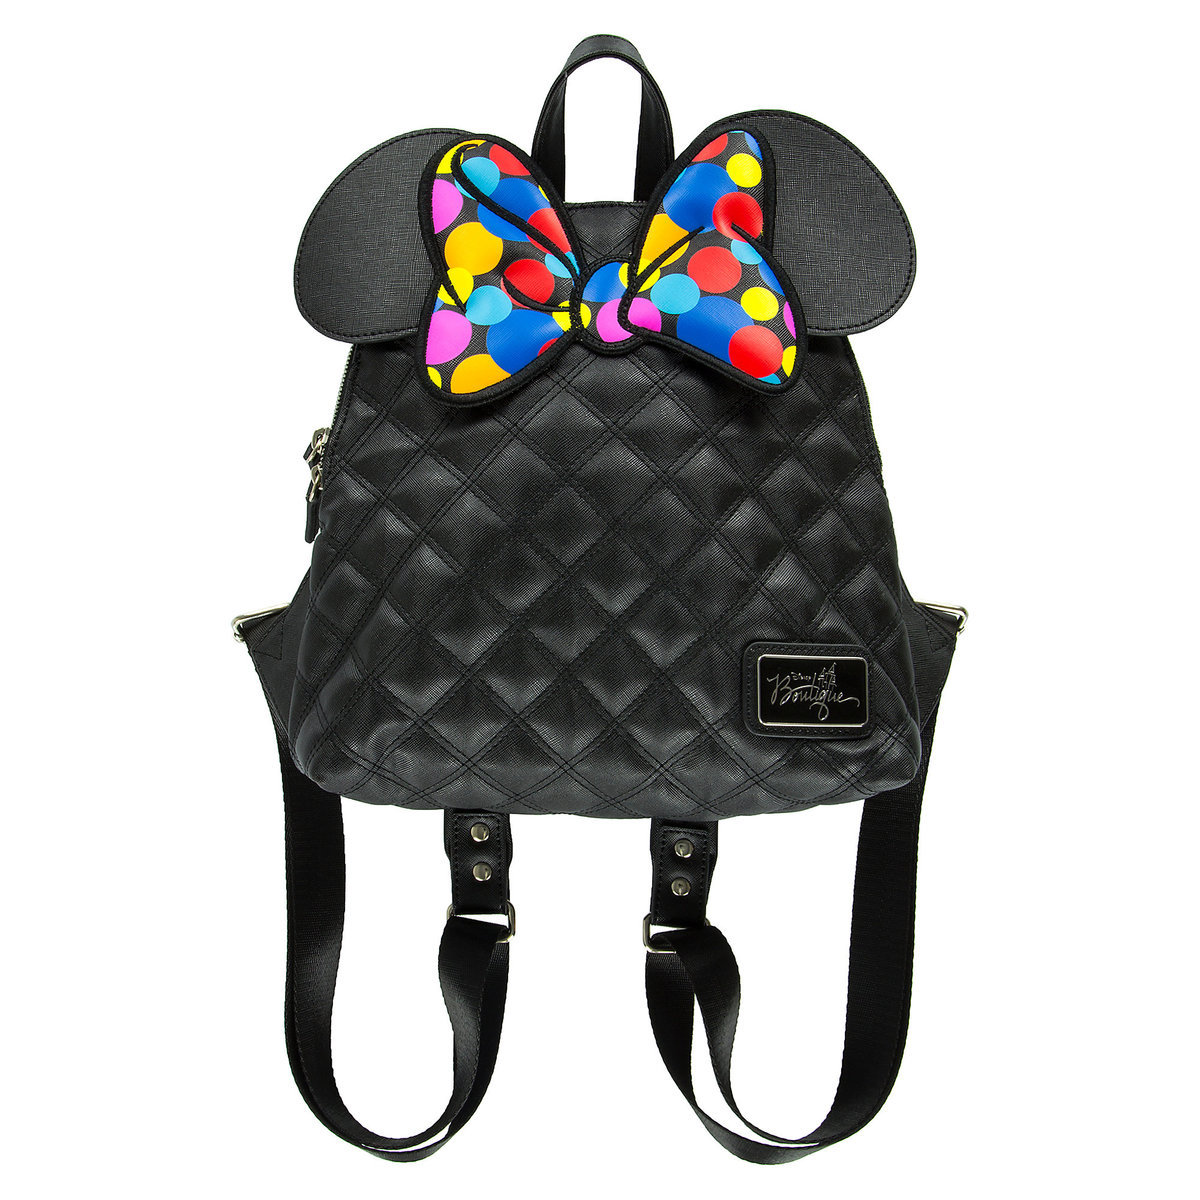 d5f01e40d2a Disney Boutique Backpack Bag - Minnie Rocks the Dots by Loungefly